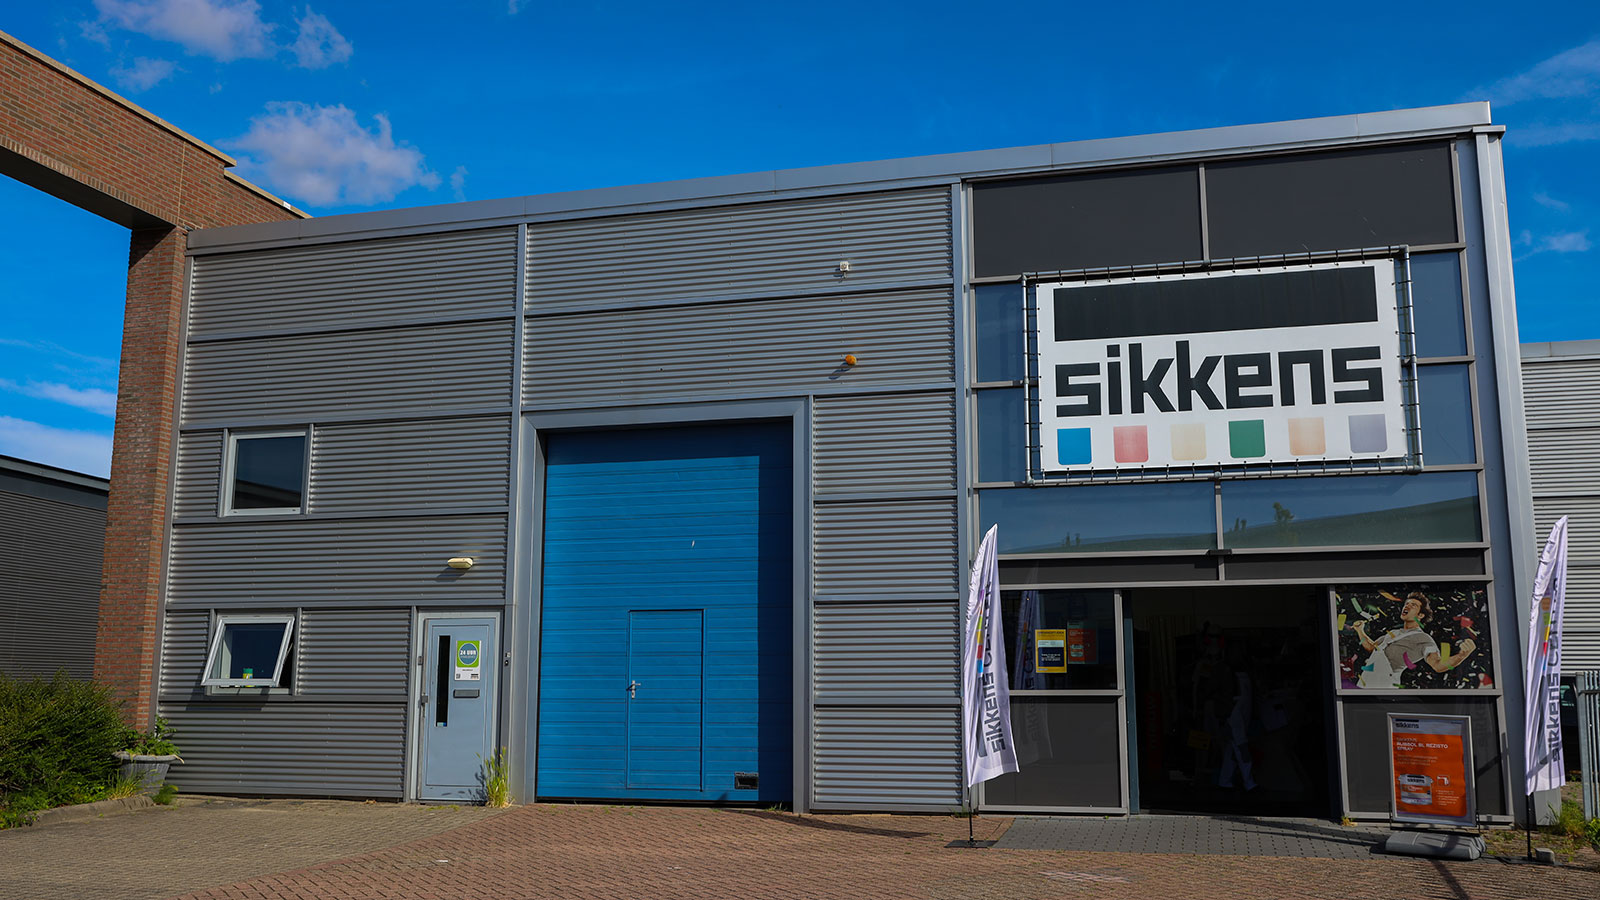 uploads/images/3d97fea1-97bc-4c1b-857d-824a05651f10/Stores/Sikkens-Center-Hendrik-Ido-Ambacht.jpg